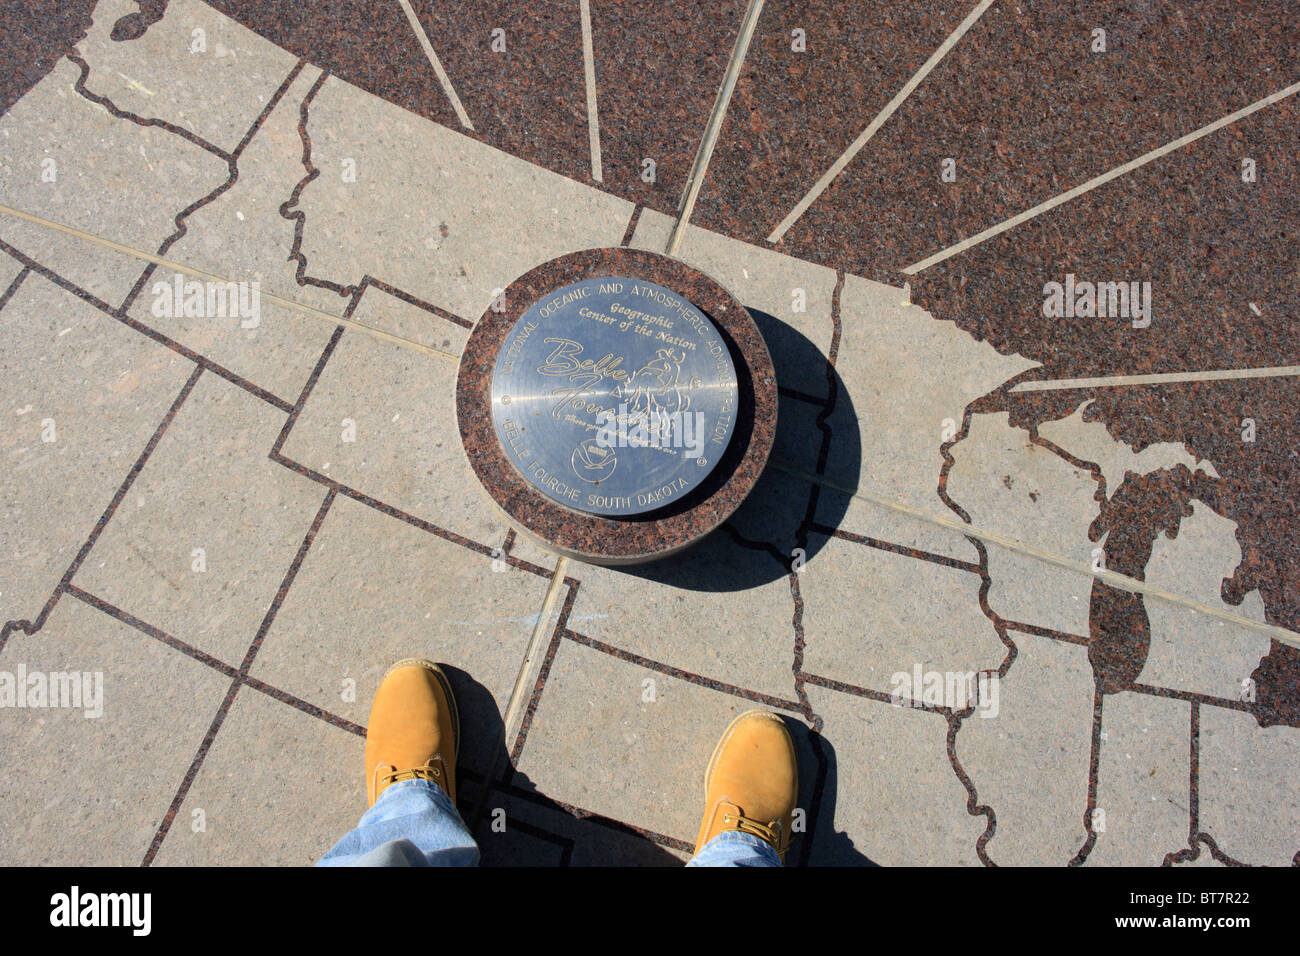 Survey marker in Belle Fourche, South Dakota designating it as the geographic center of the United States. - Stock Image